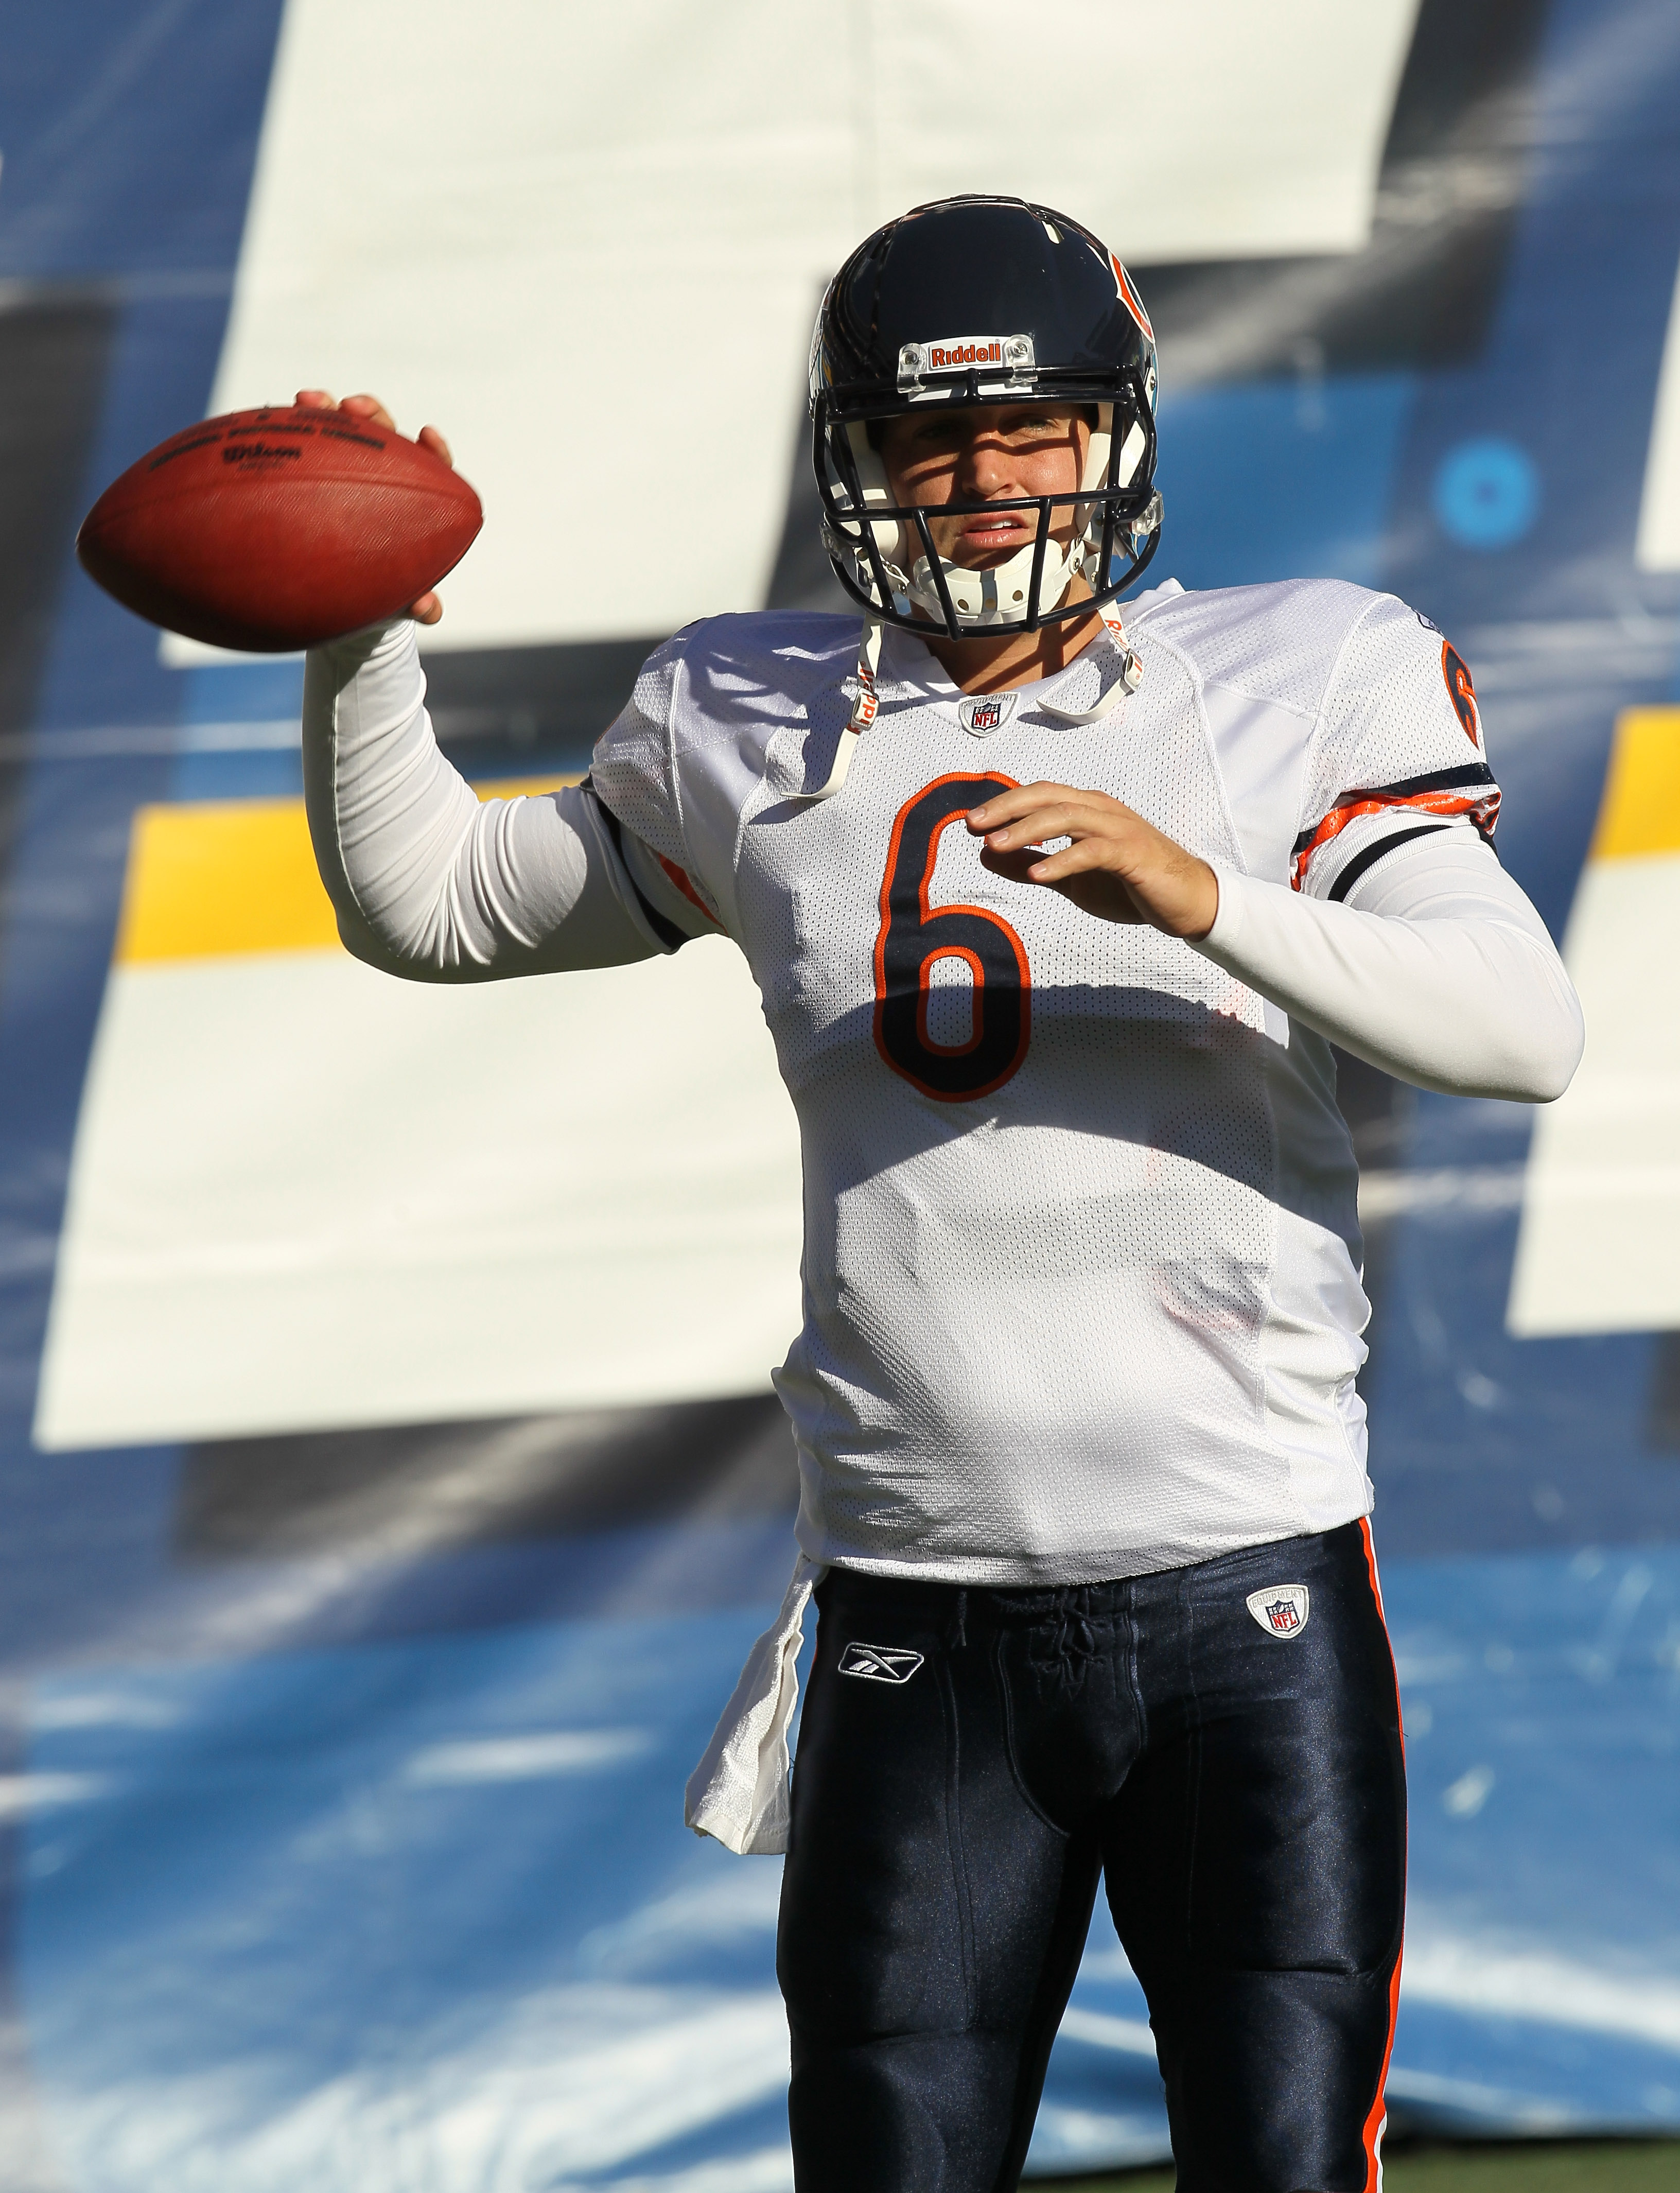 Cutler will have to wait another year to play in a playoff game with the Bears